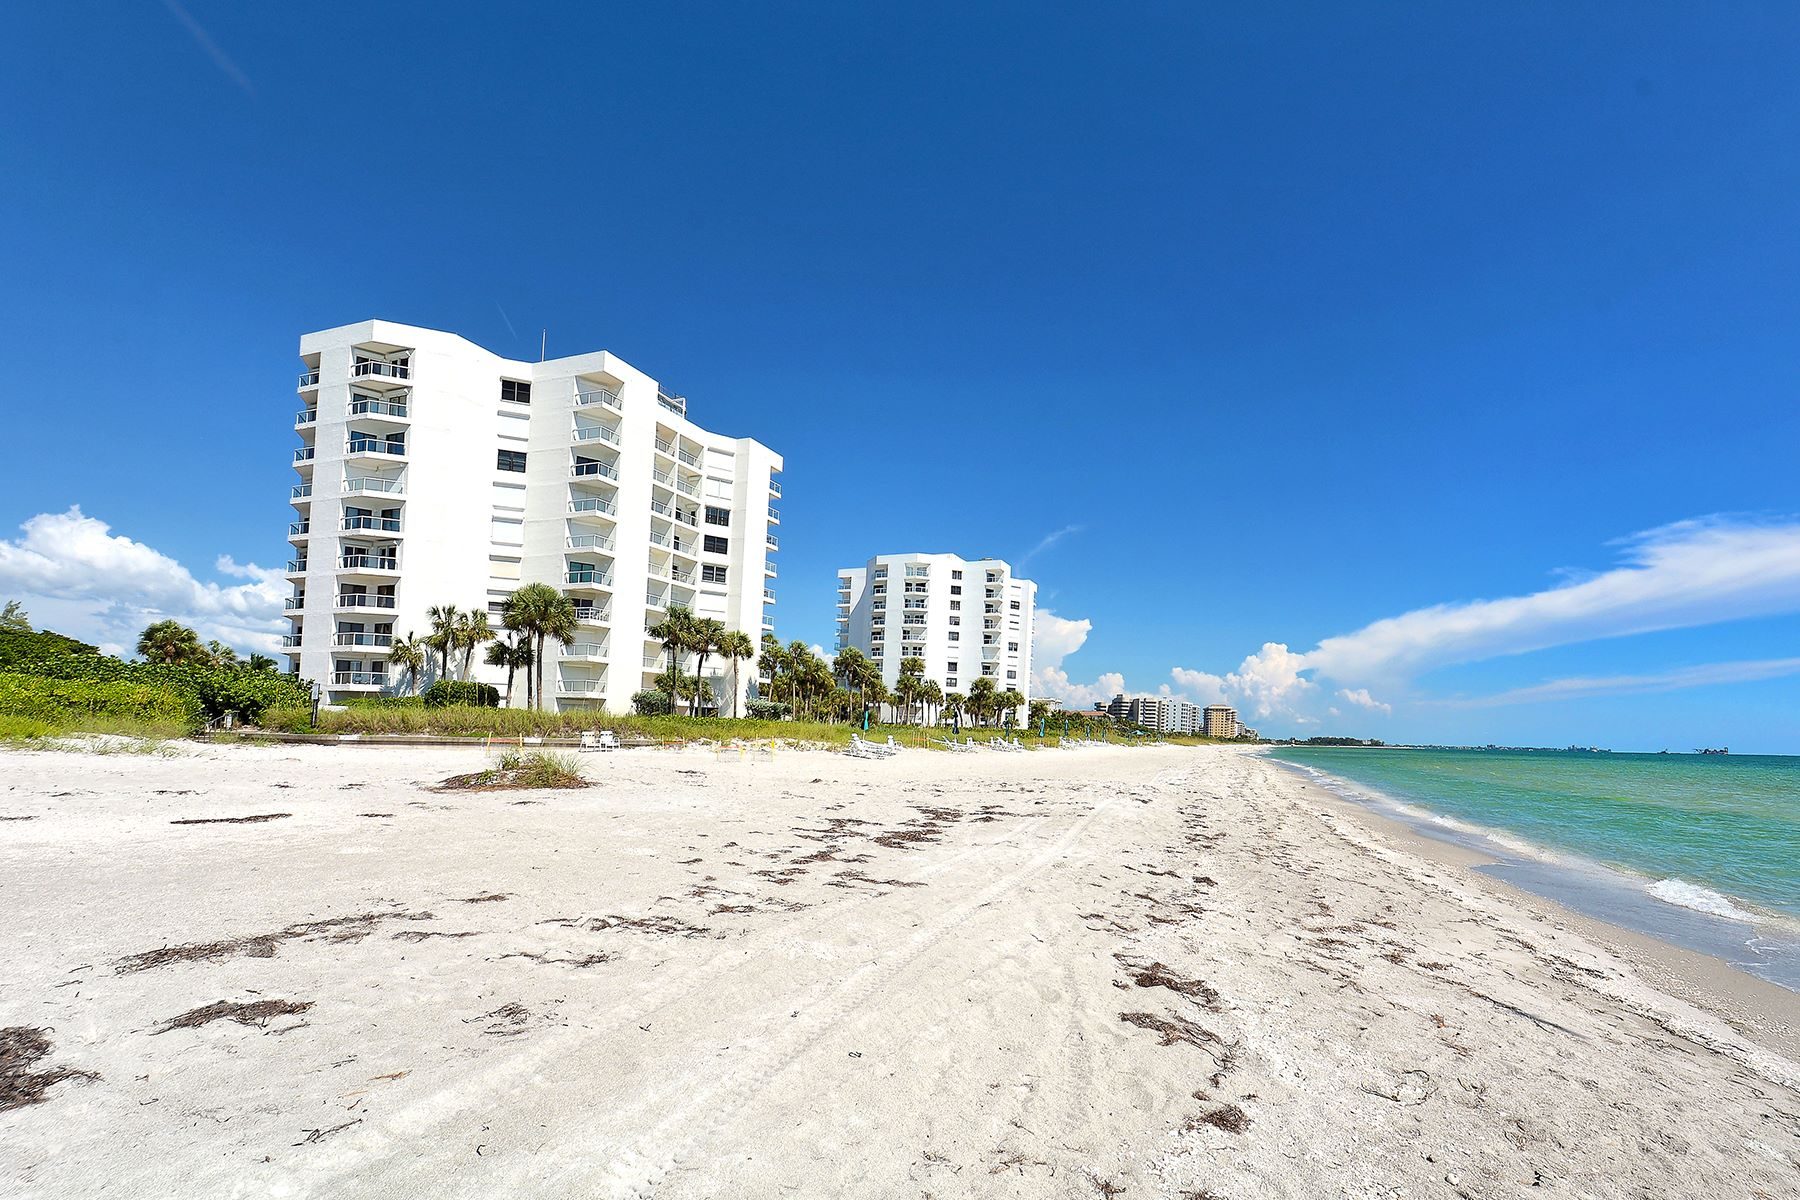 Additional photo for property listing at LONGBOAT KEY 1050  Longboat Club Rd 303 Longboat Key, Florida 34228 United States